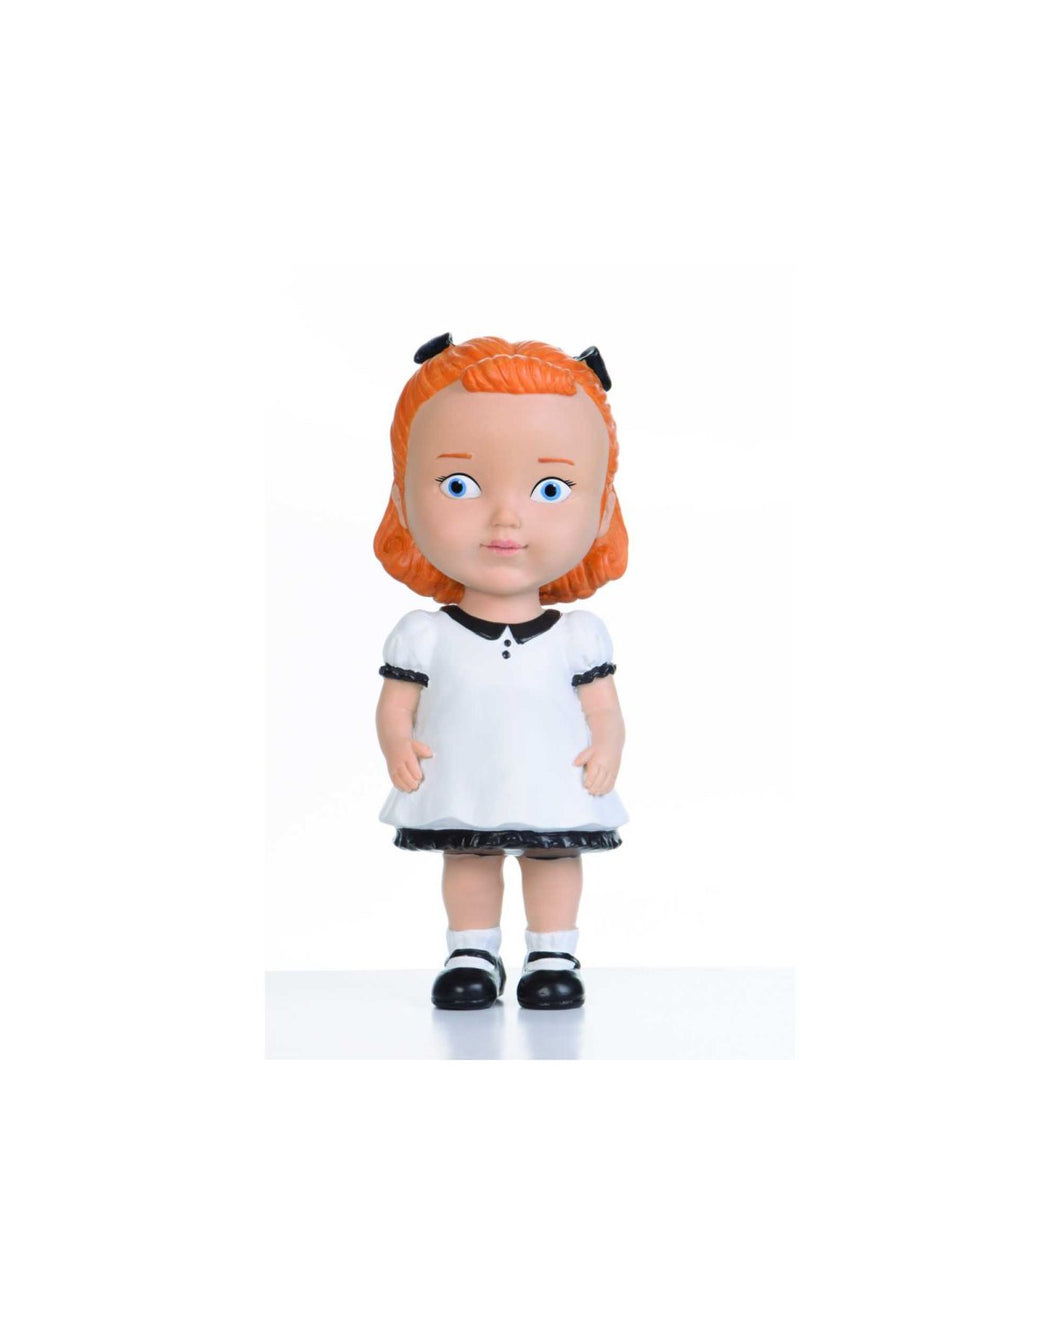 Red Hair Girl Doll